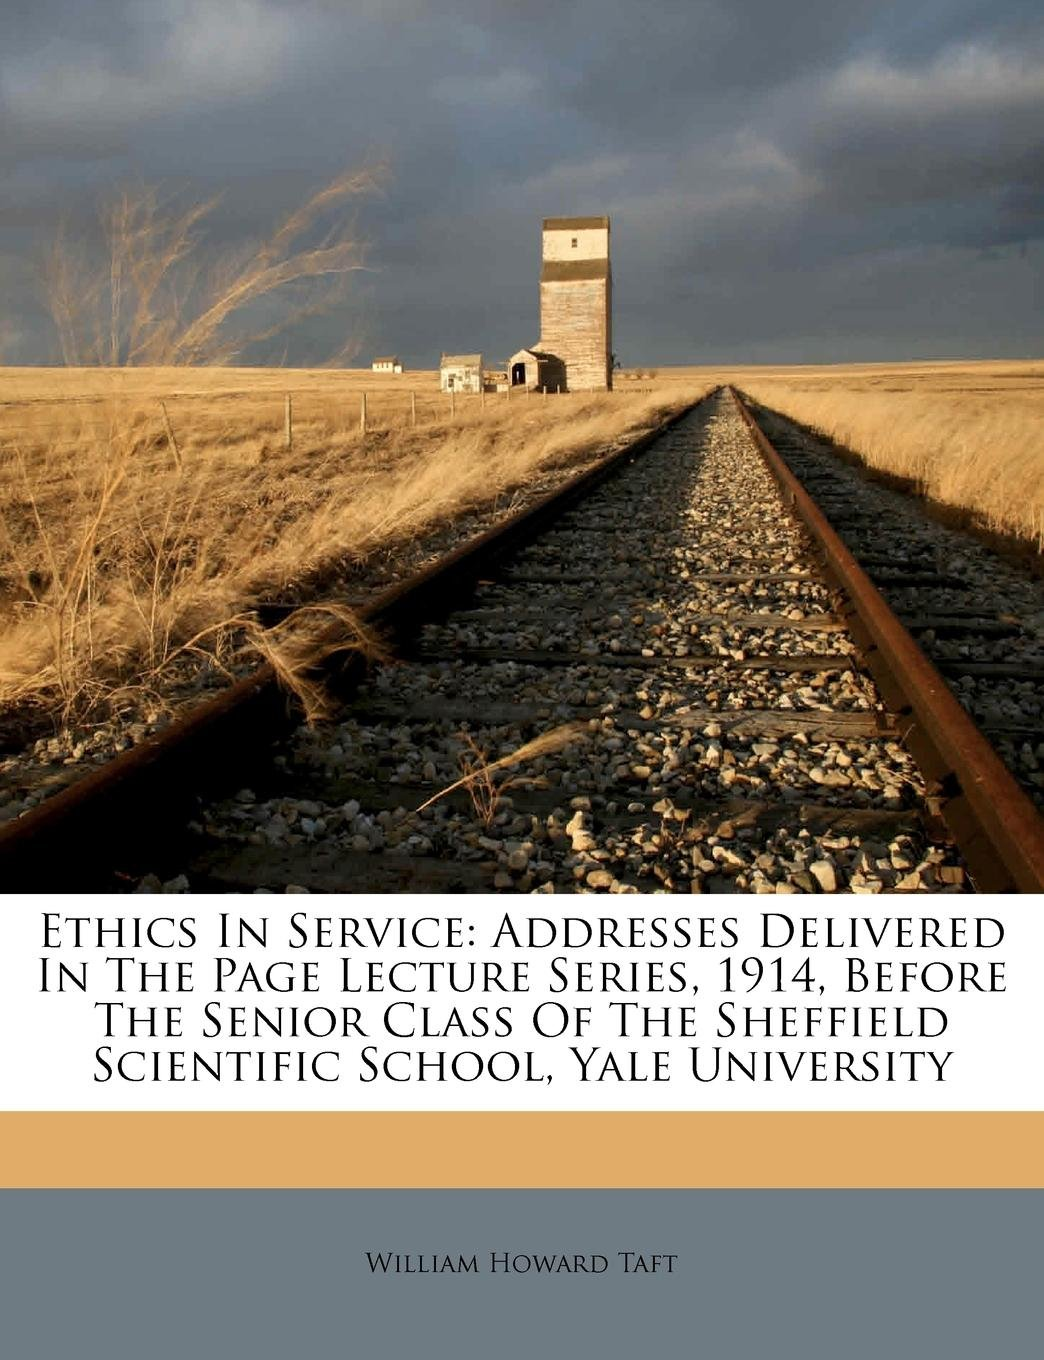 Download Ethics In Service: Addresses Delivered In The Page Lecture Series, 1914, Before The Senior Class Of The Sheffield Scientific School, Yale University pdf